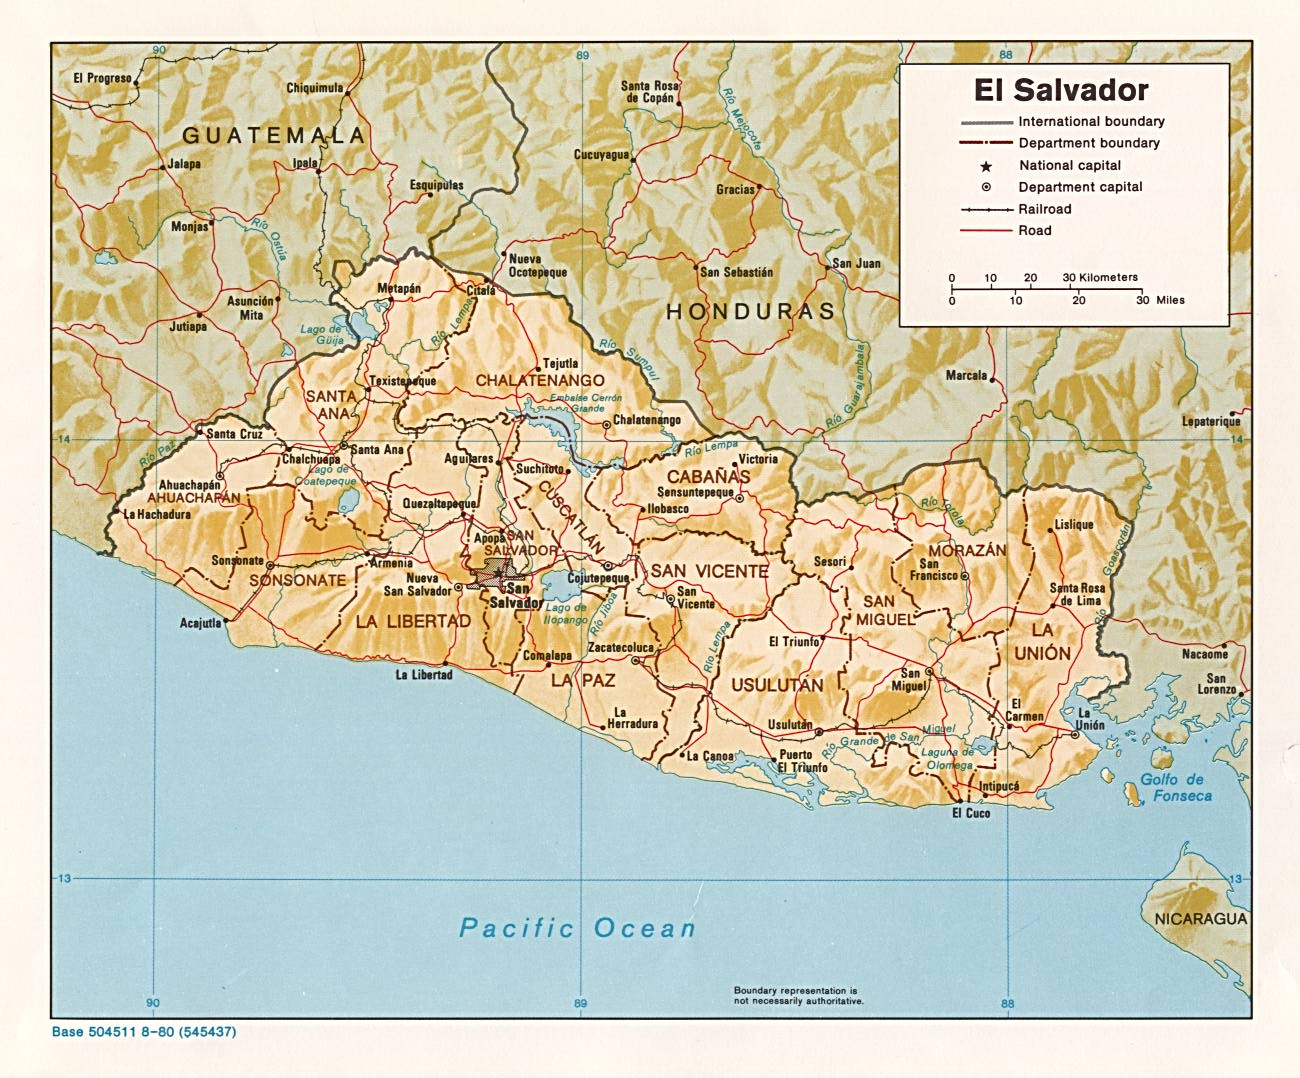 Map of El Salvador 1980